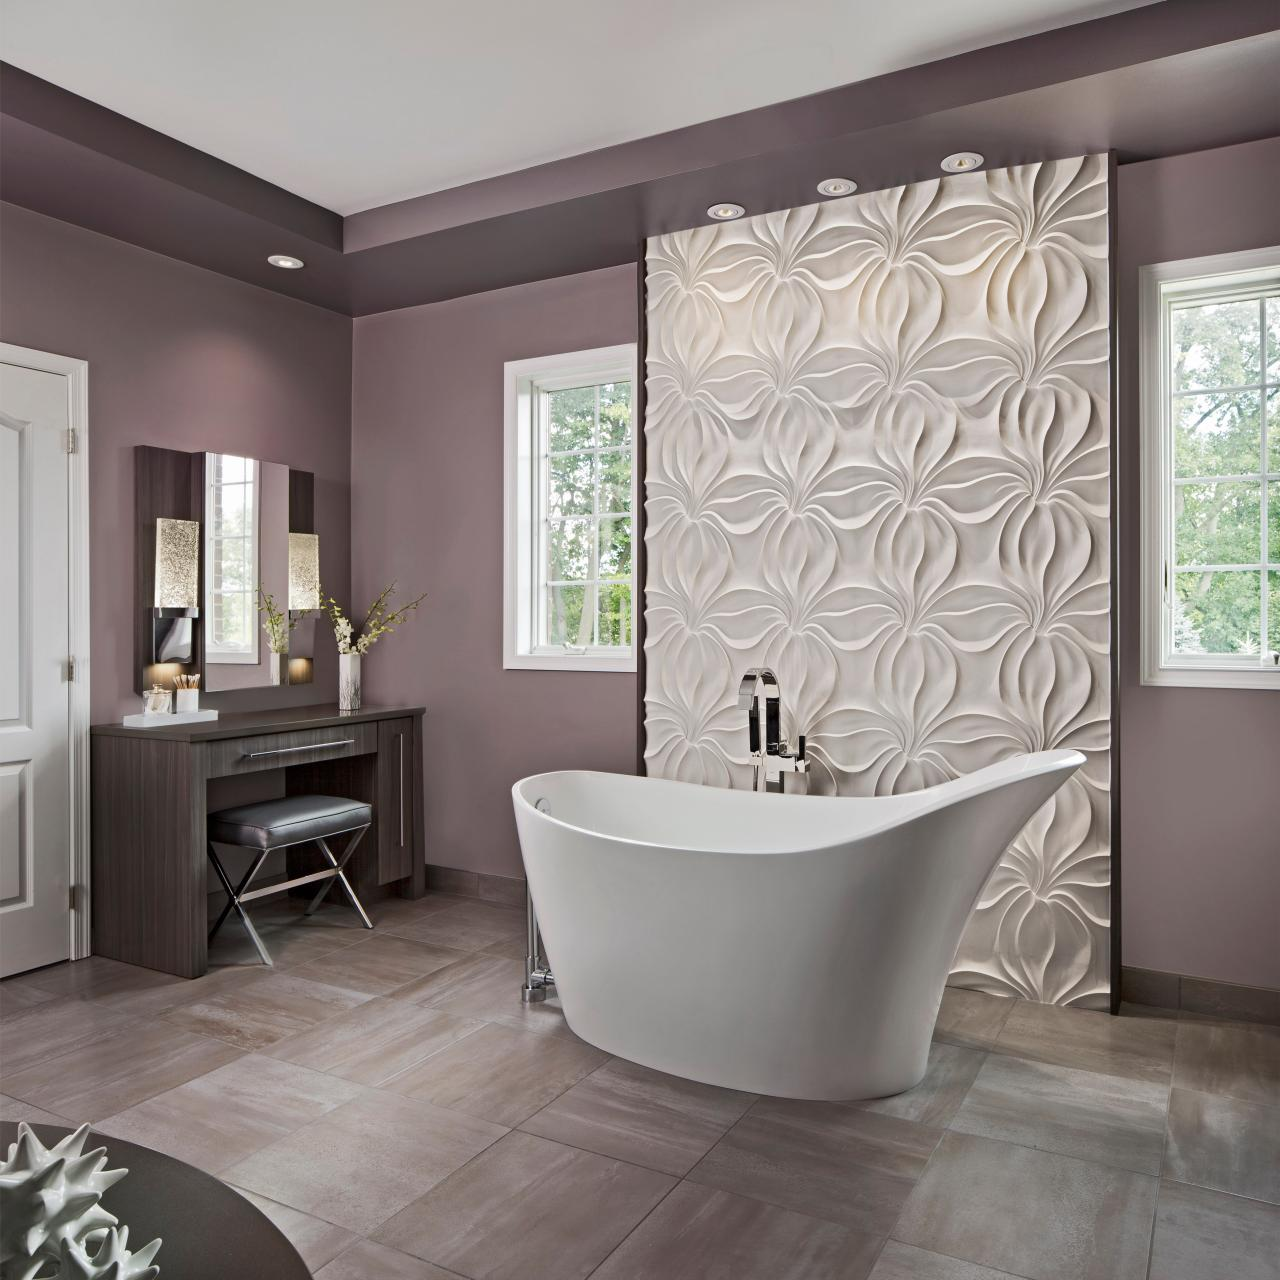 freestanding focal point - Bathroom Designs With Freestanding Tubs